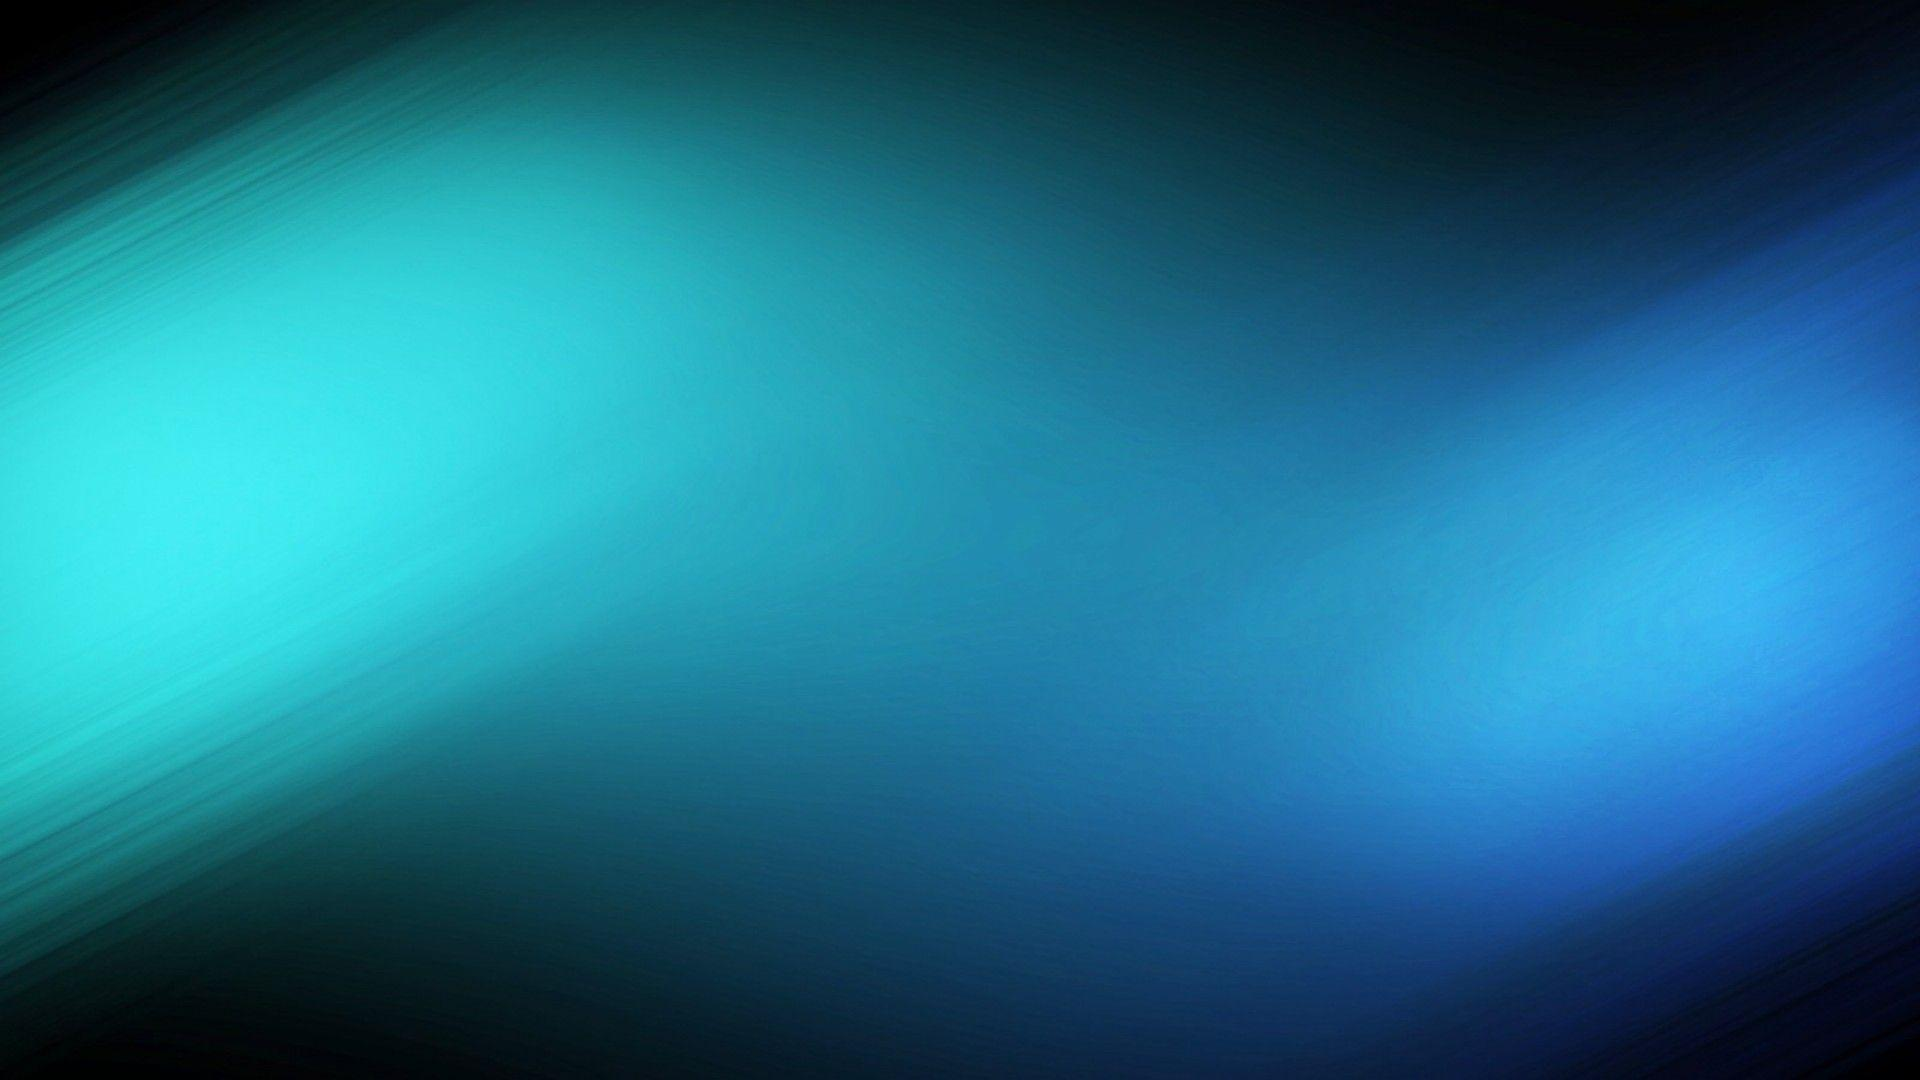 wallpaper background gradient blue - photo #8